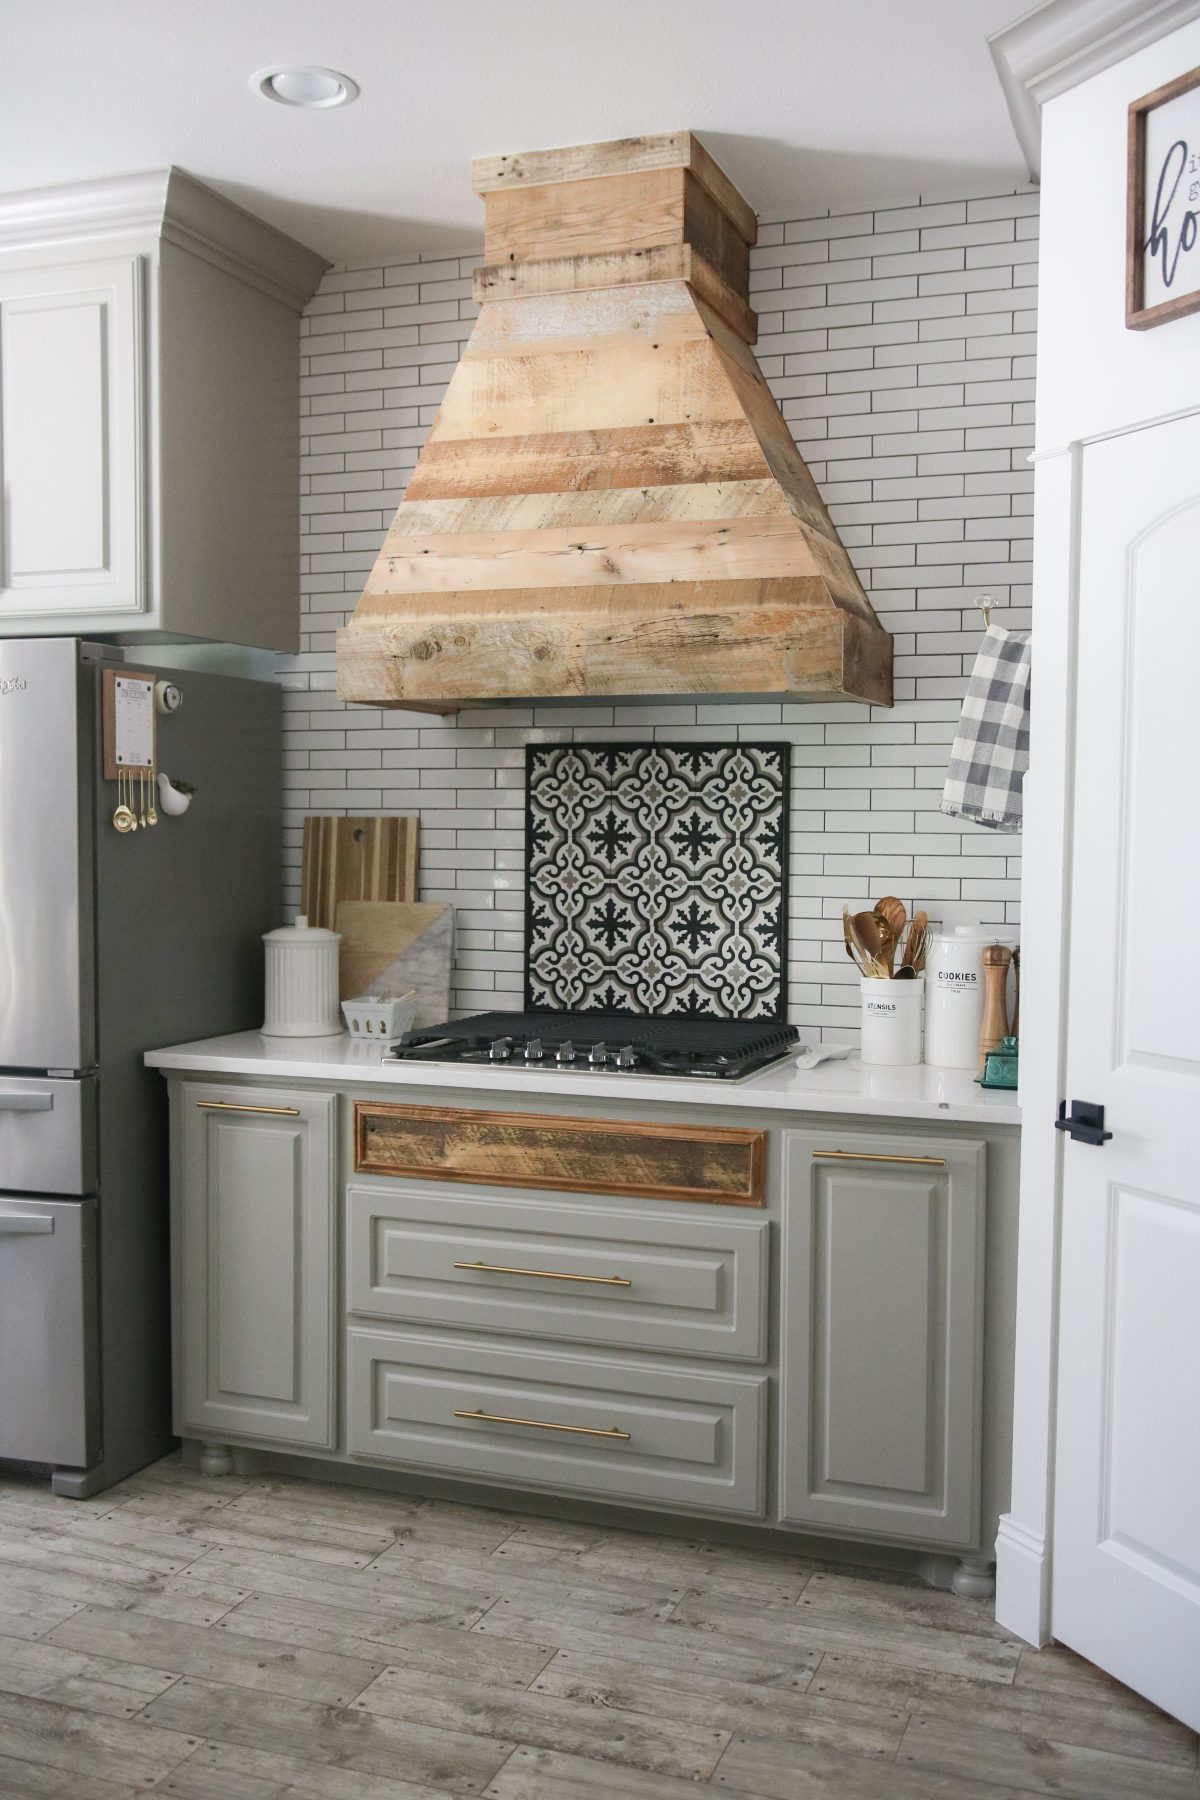 Diy Modern Farmhouse Vent Hood And Tool Giveaway